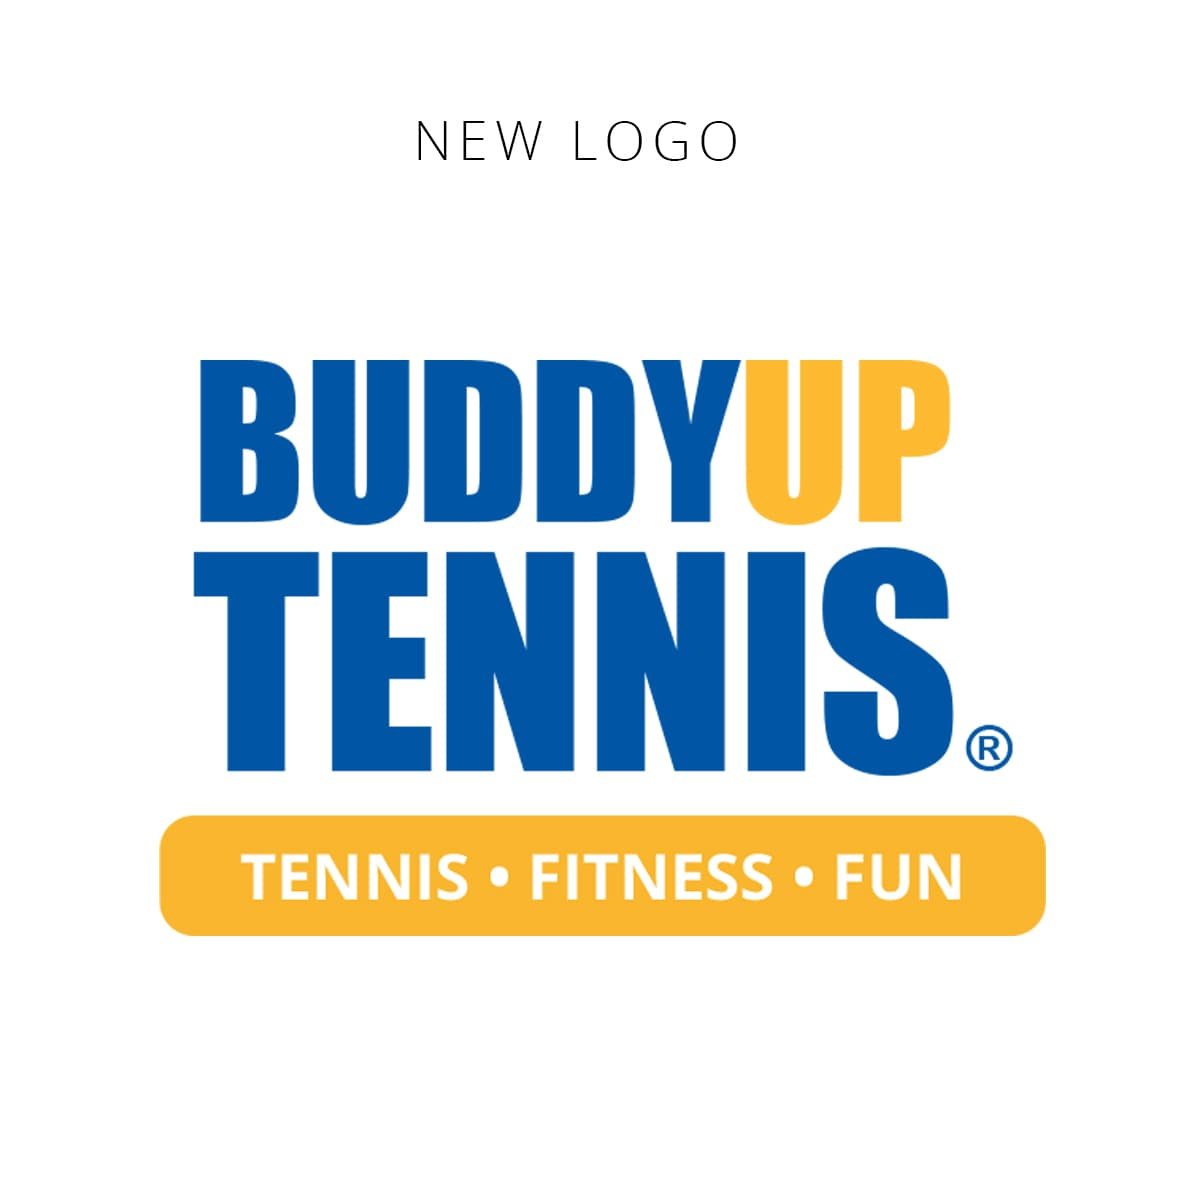 Buddy Up Tennis Logo DisplayNew Logo.jpg